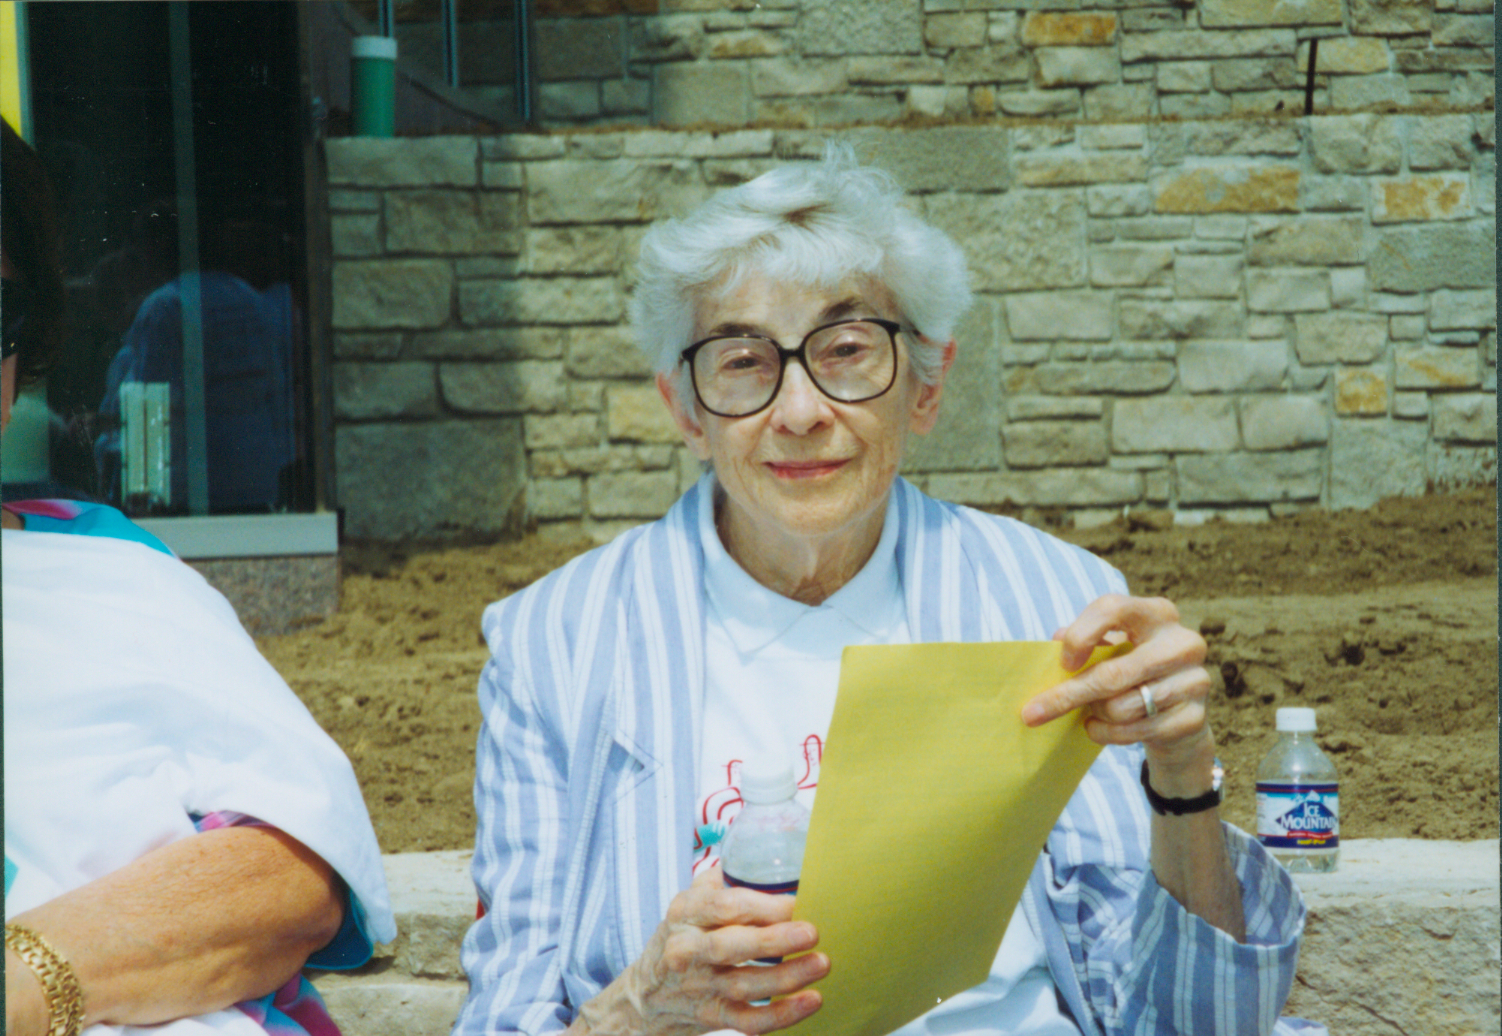 [Color photograph of Sr. Mary Mangan]